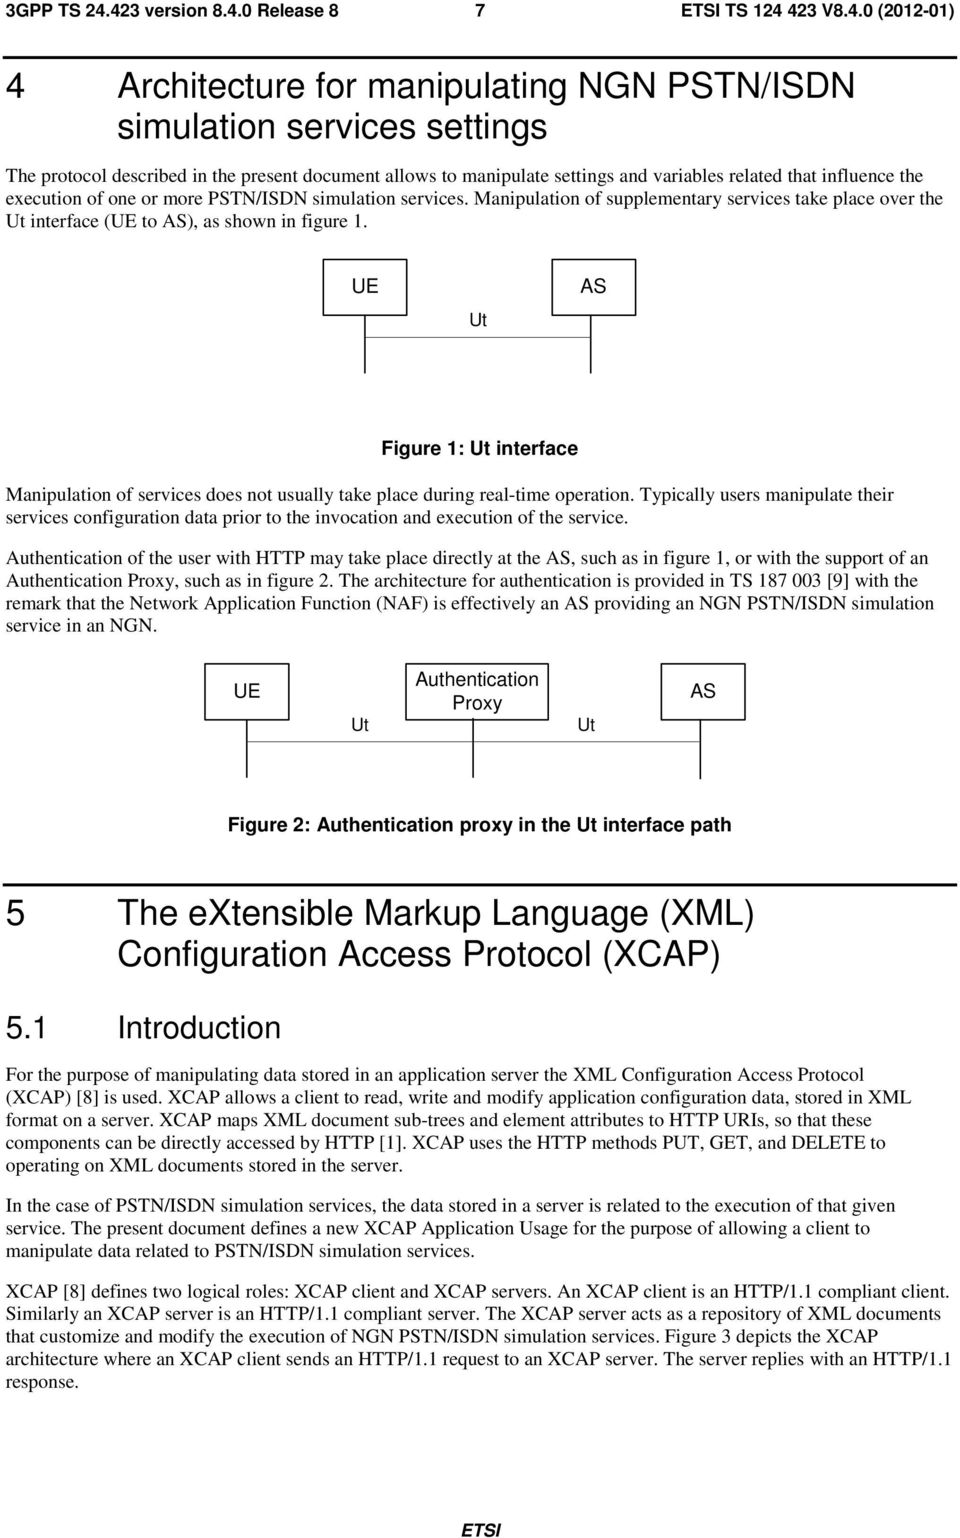 influence the execution of one or more PSTN/ISDN simulation services. Manipulation of supplementary services take place over the Ut interface (UE to AS), as shown in figure 1.